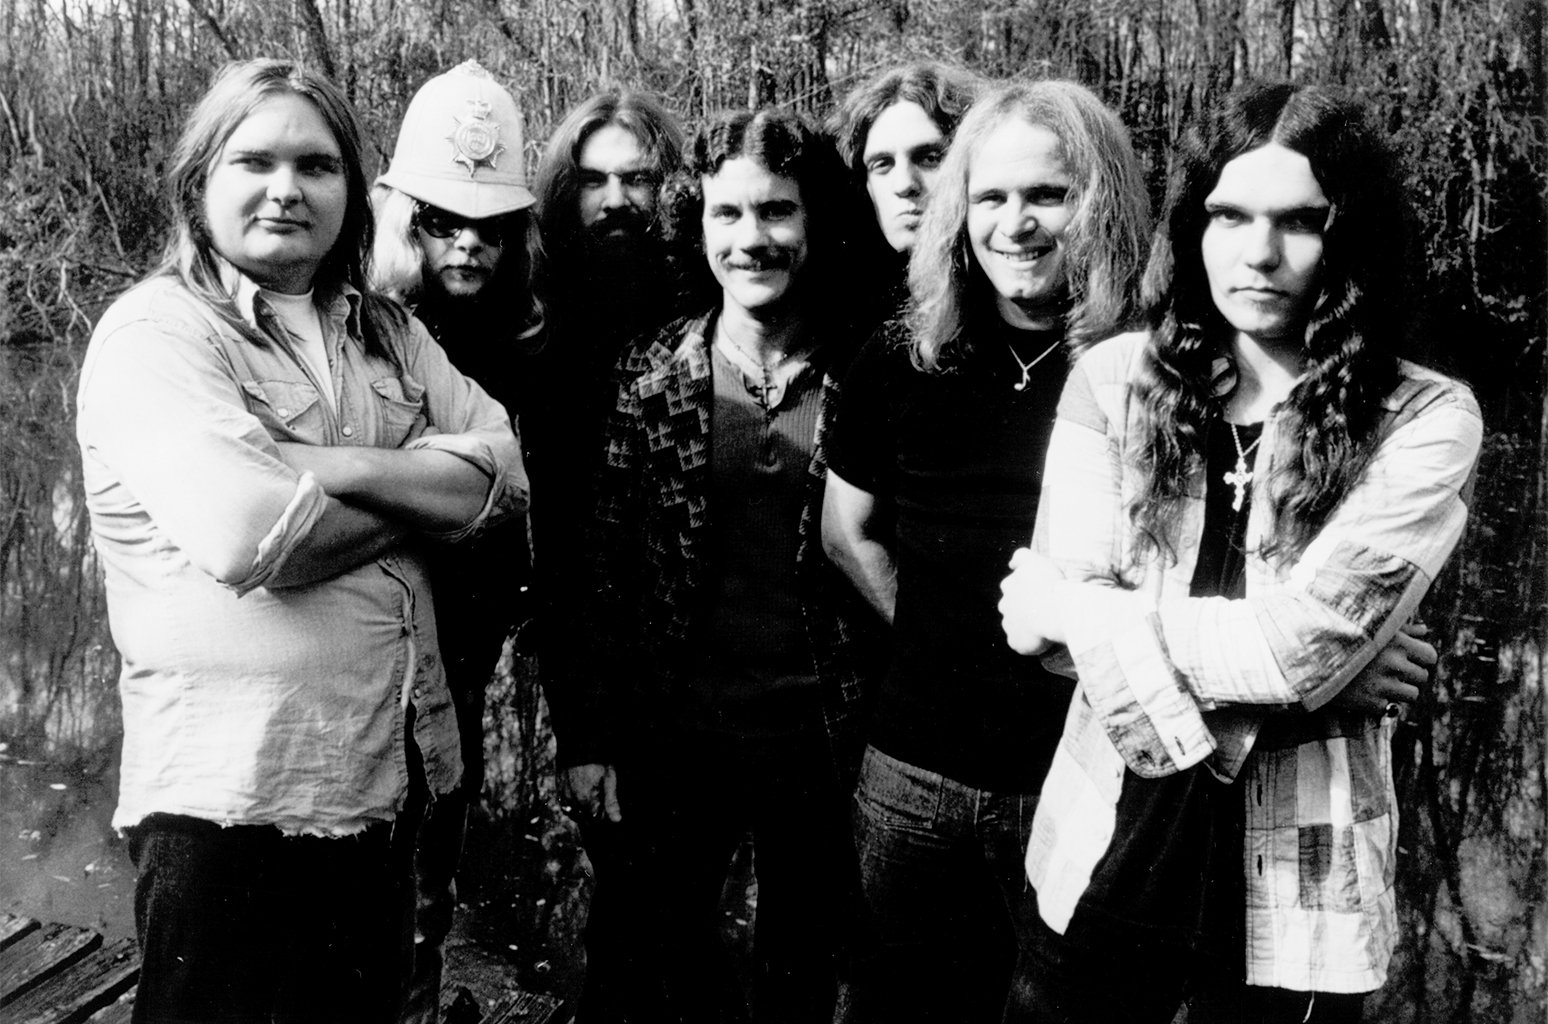 Family home of .38 Special and Lynyrd Skynyrd members gets Florida historical marker https://t.co/o9Q5uEn08U https://t.co/A6ytg0U4L0